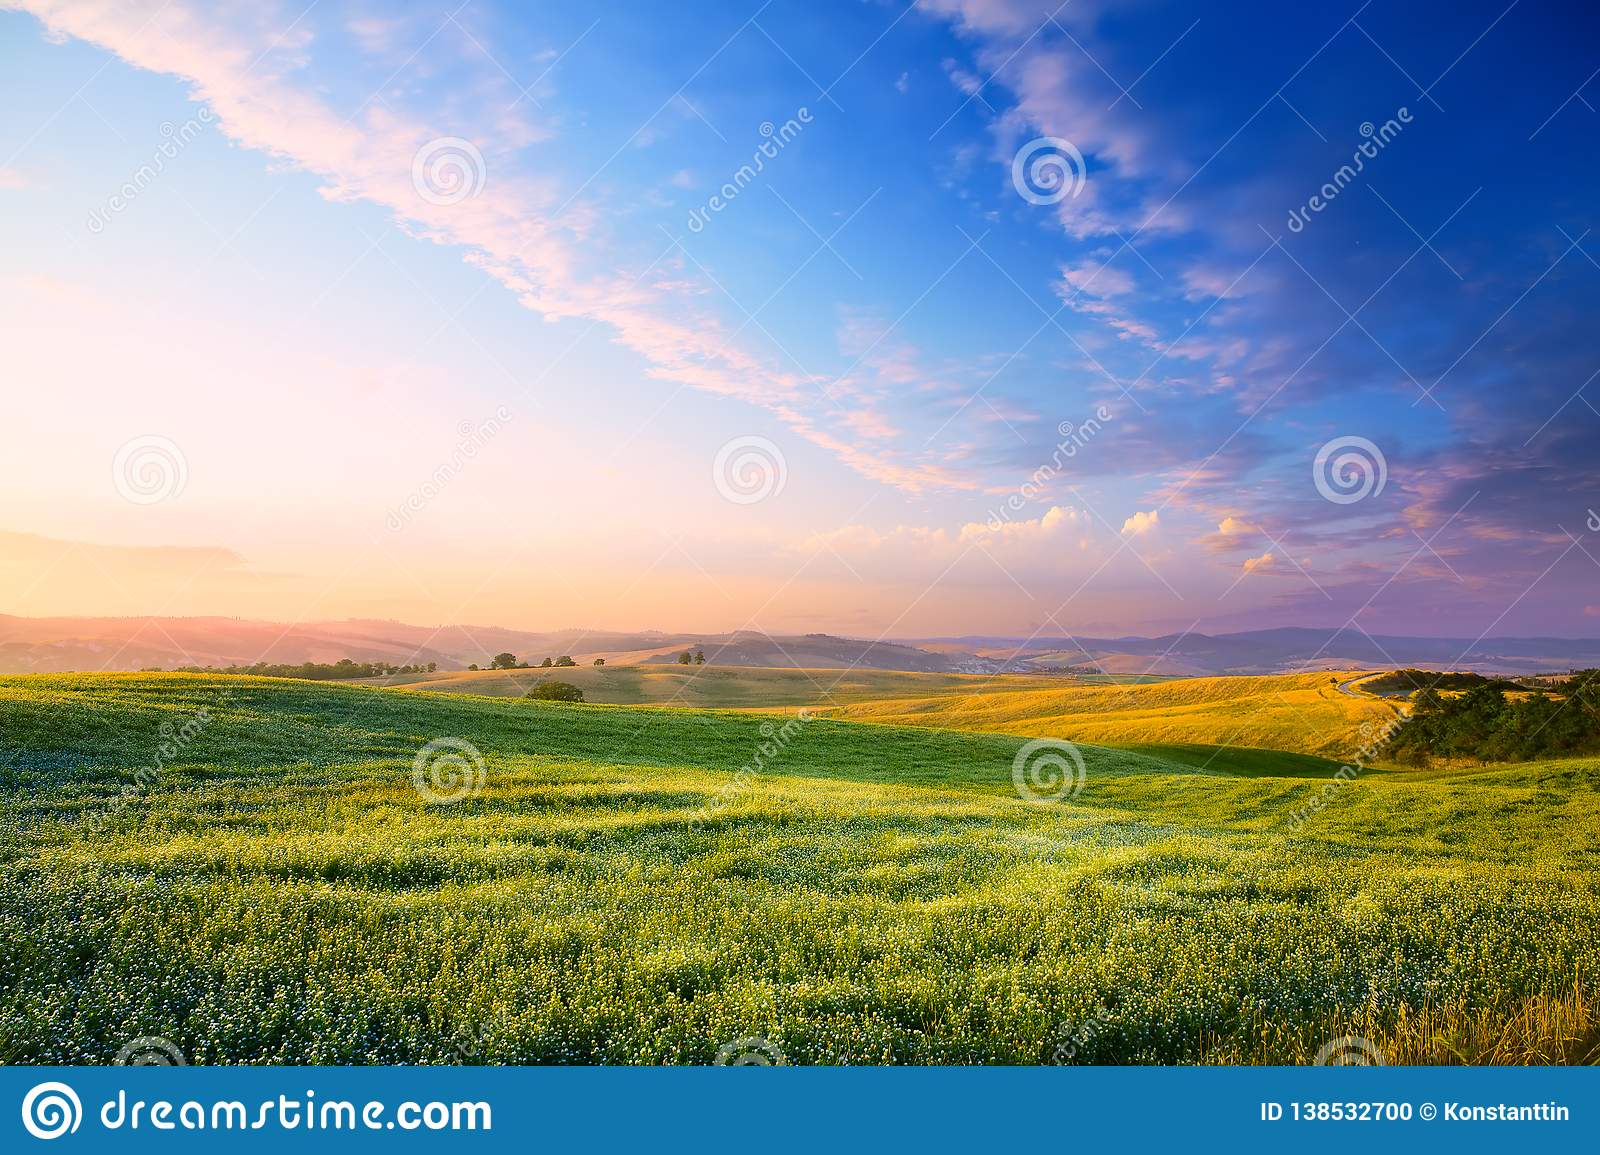 Art Panorama of a colourful sunset on a flowering green meadow